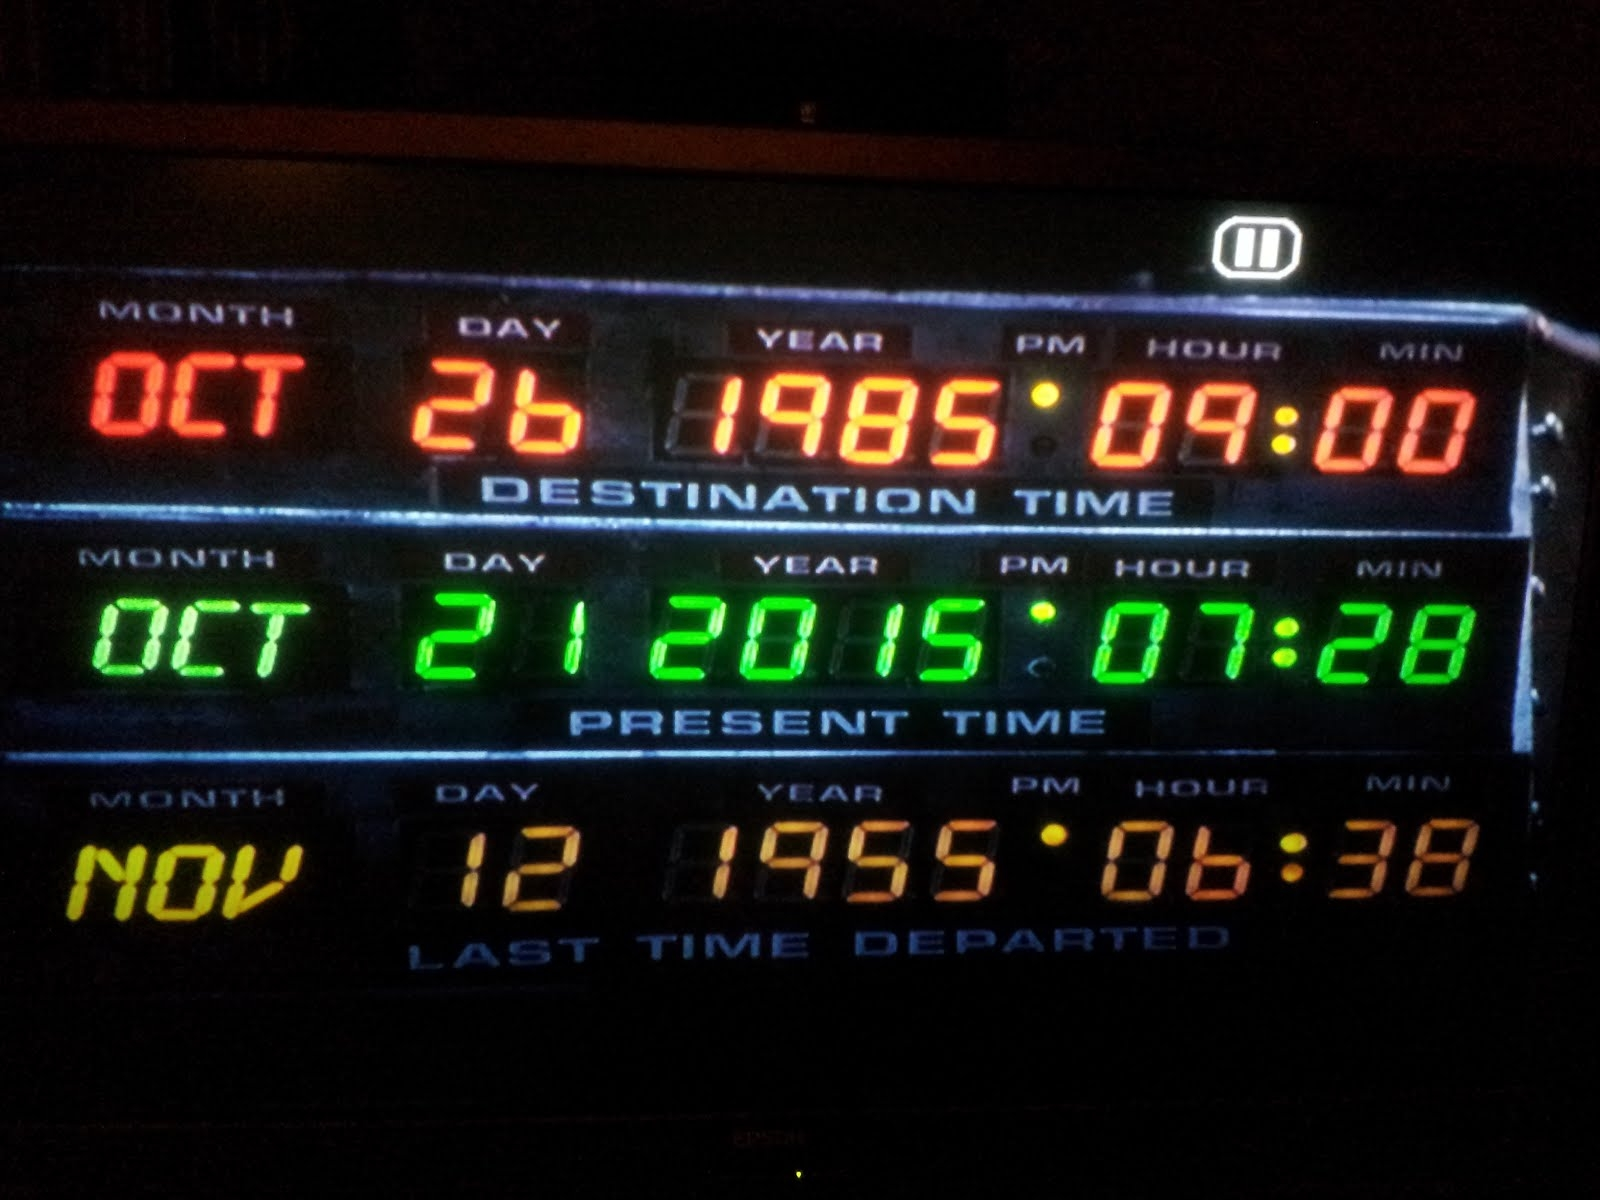 BACK TO THE FUTURE OCT 21 2015